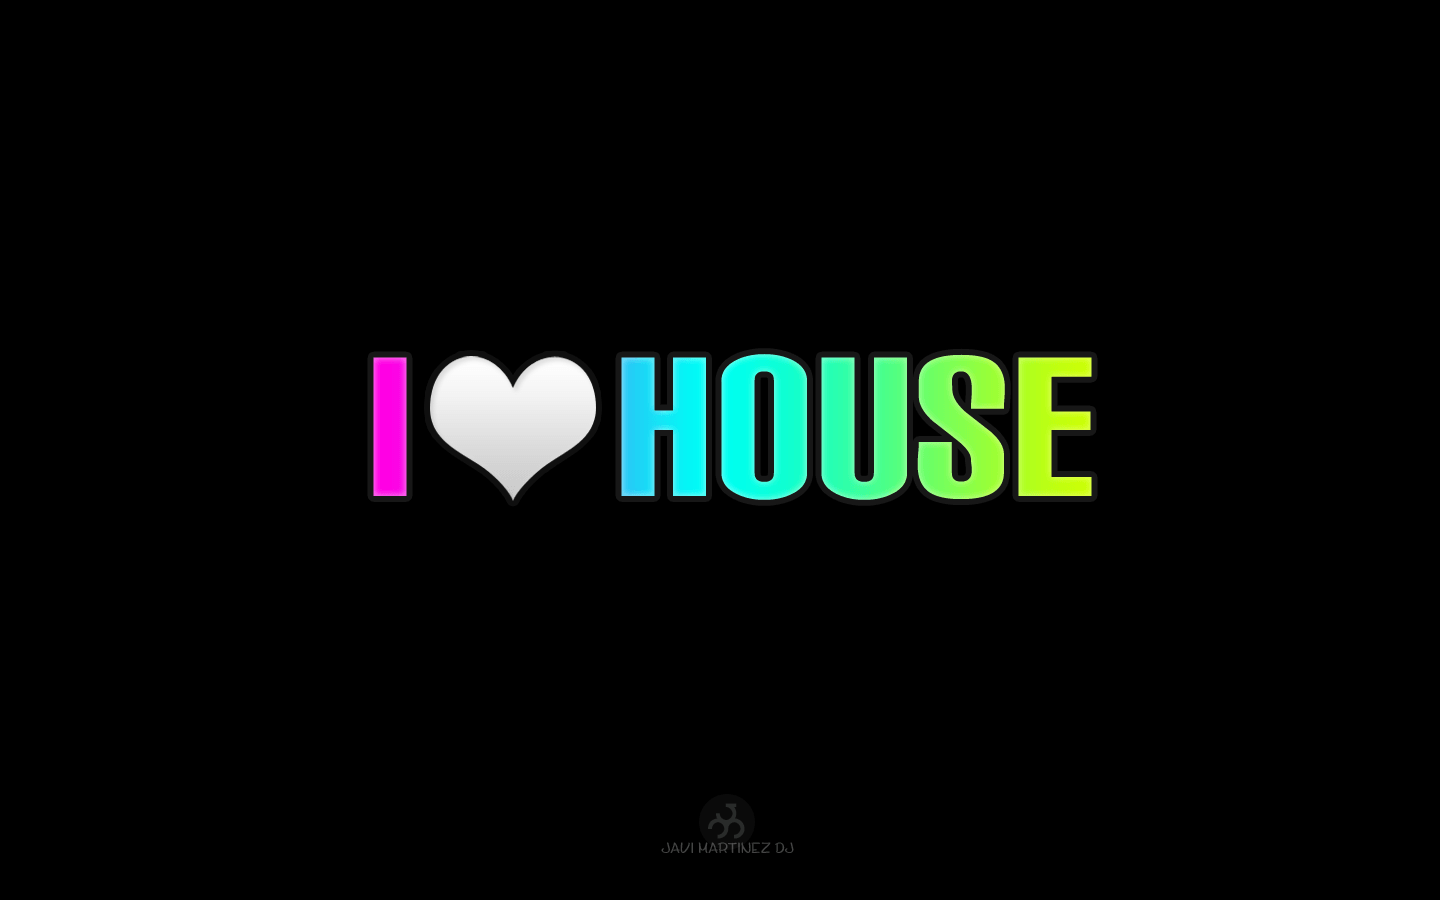 I love house music wallpapers wallpaper cave for Best 80s house music